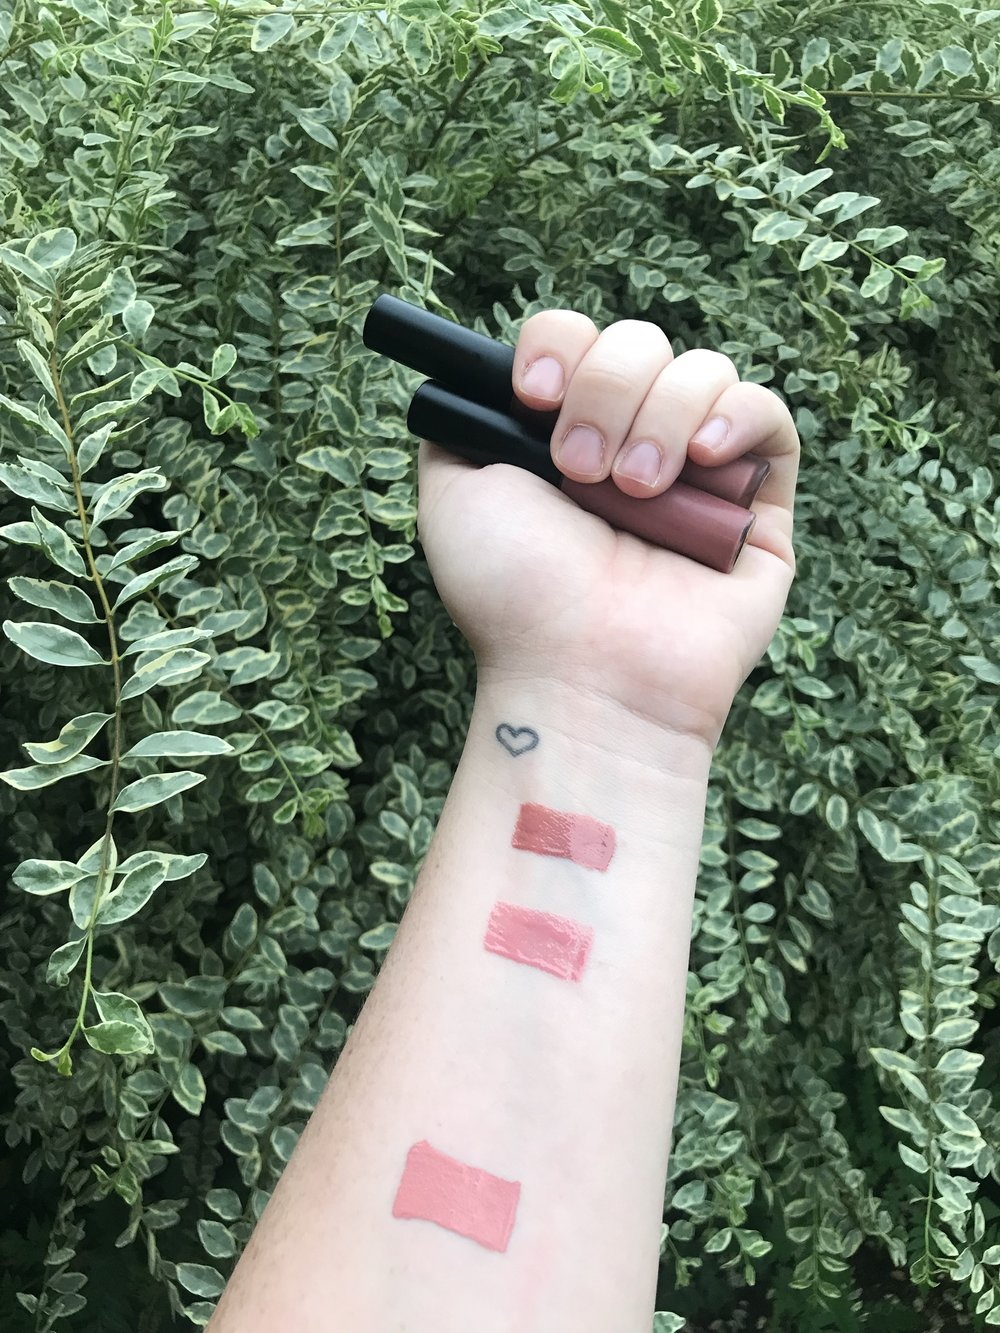 POLISHED Lip Plumping Gloss & SUEDE MATTE Liquid Lipstick